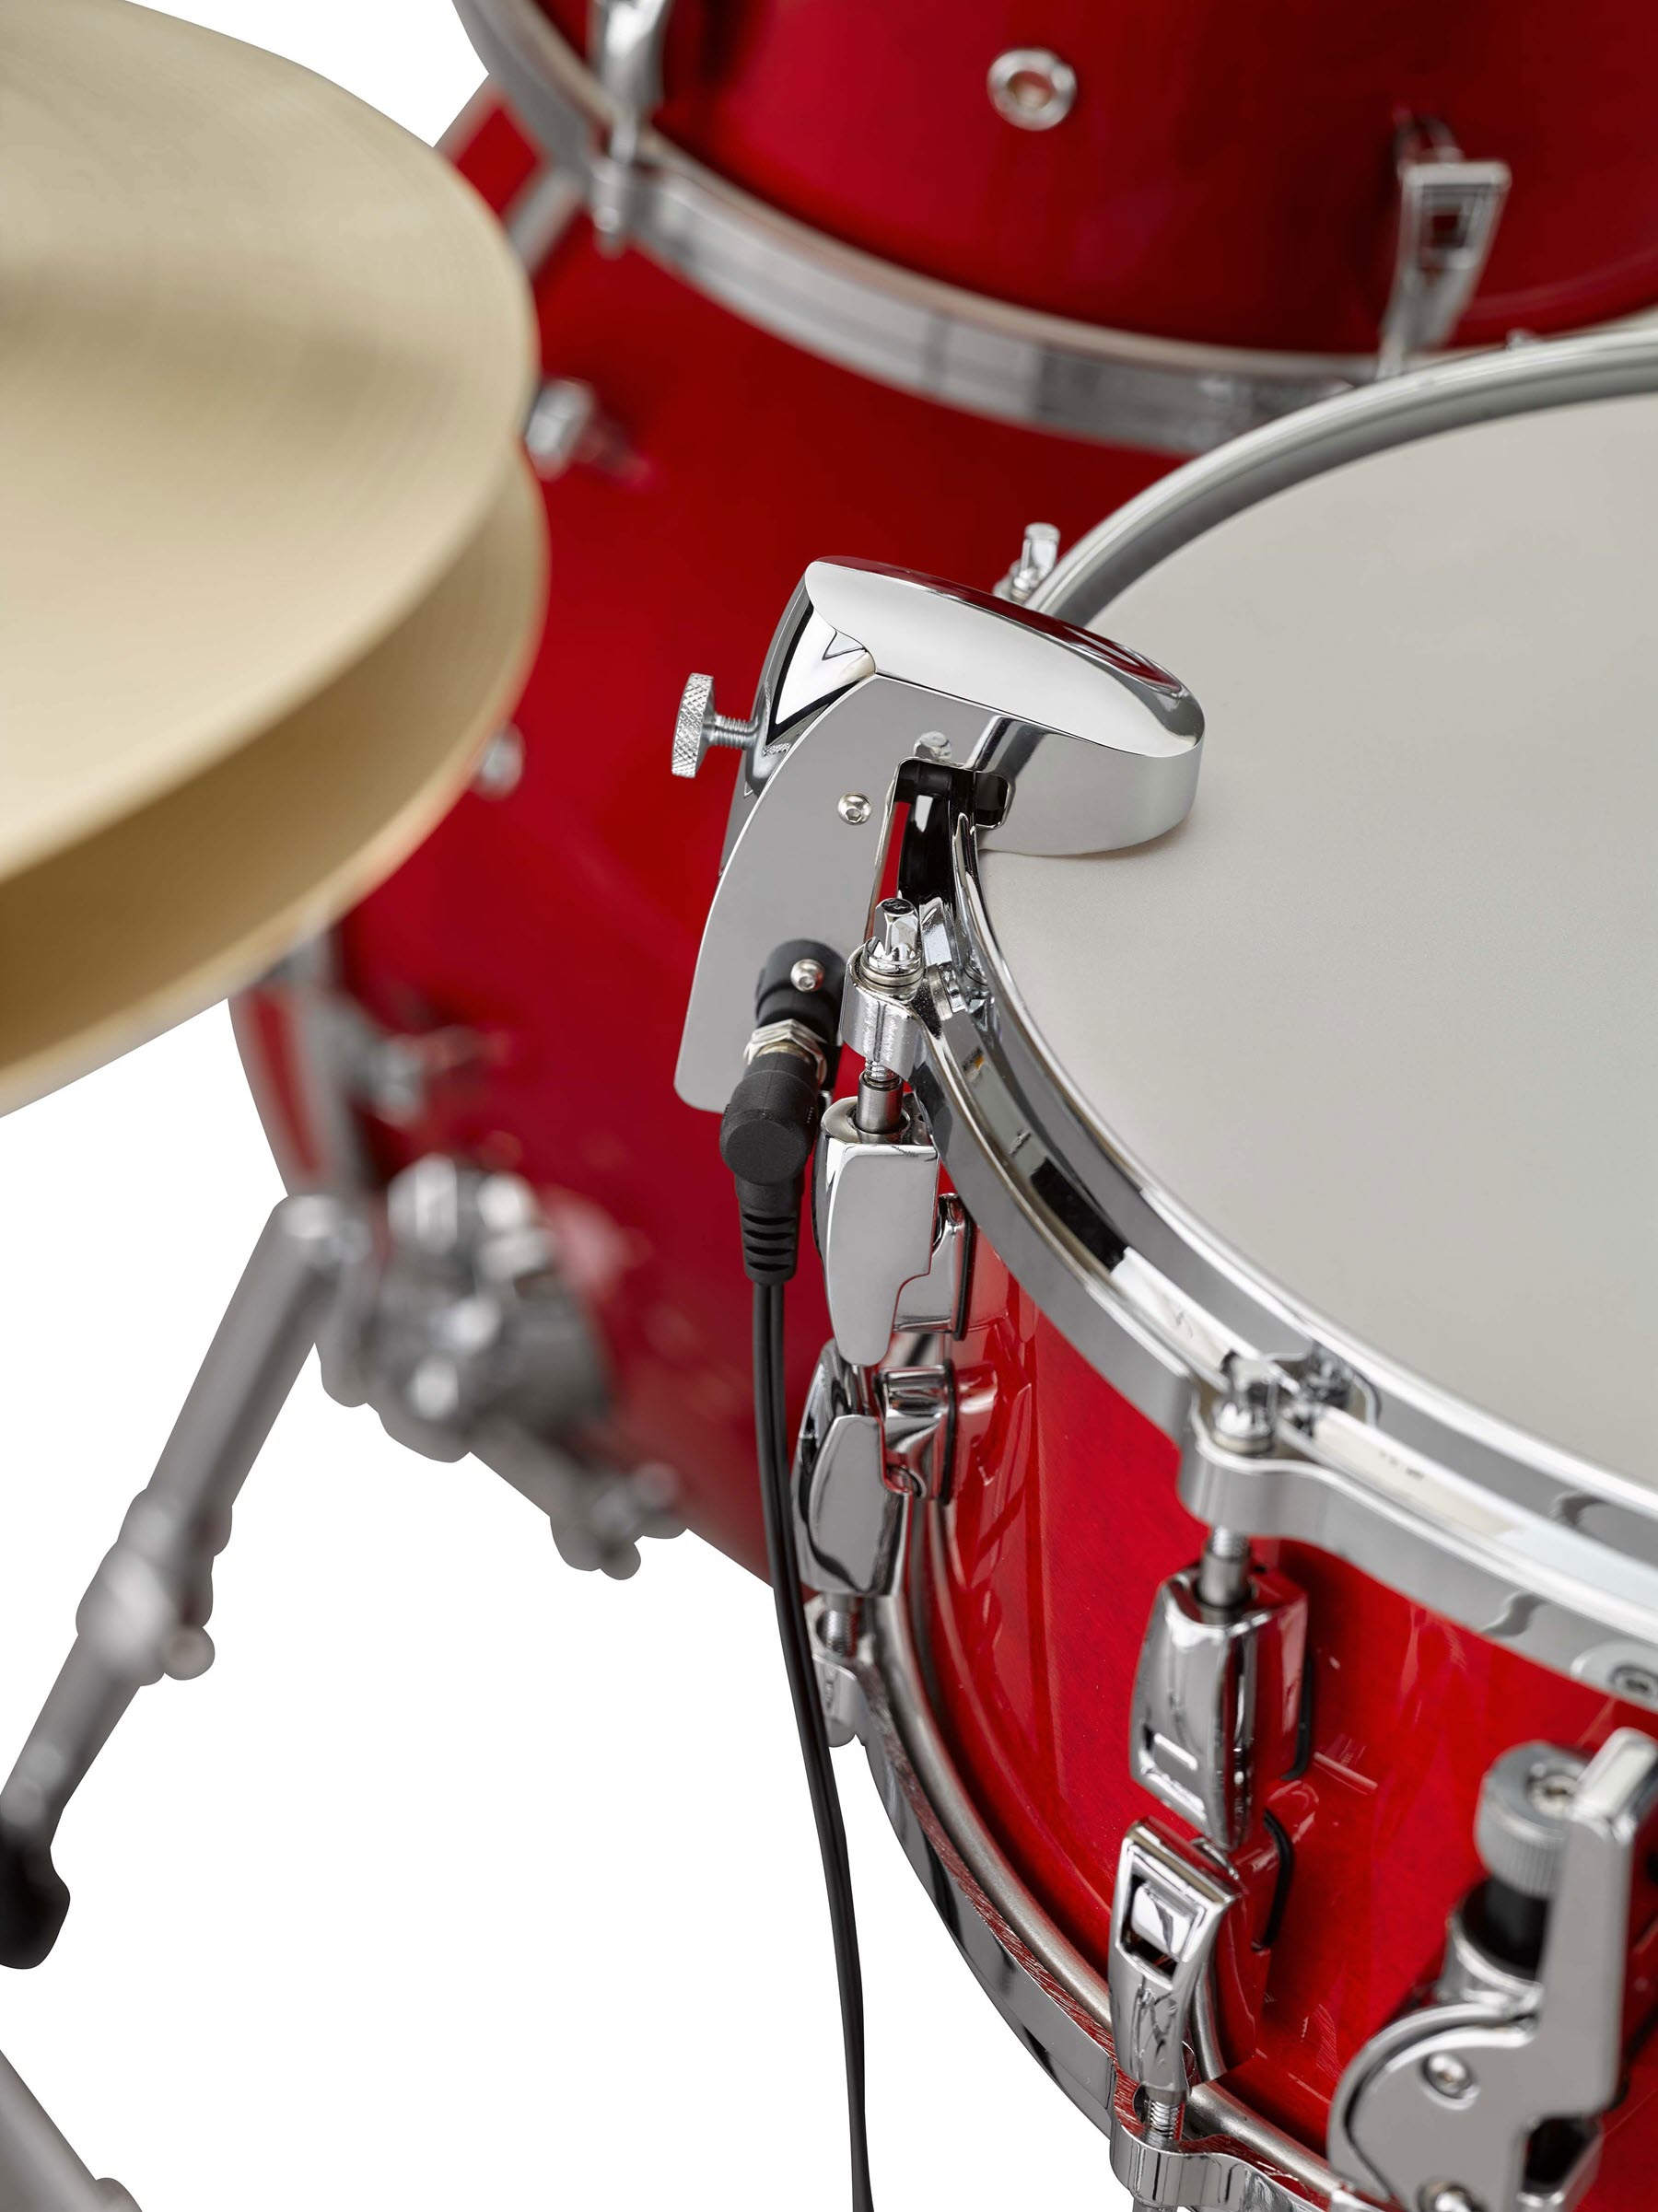 Closeup of a snare drum with sensor attached.